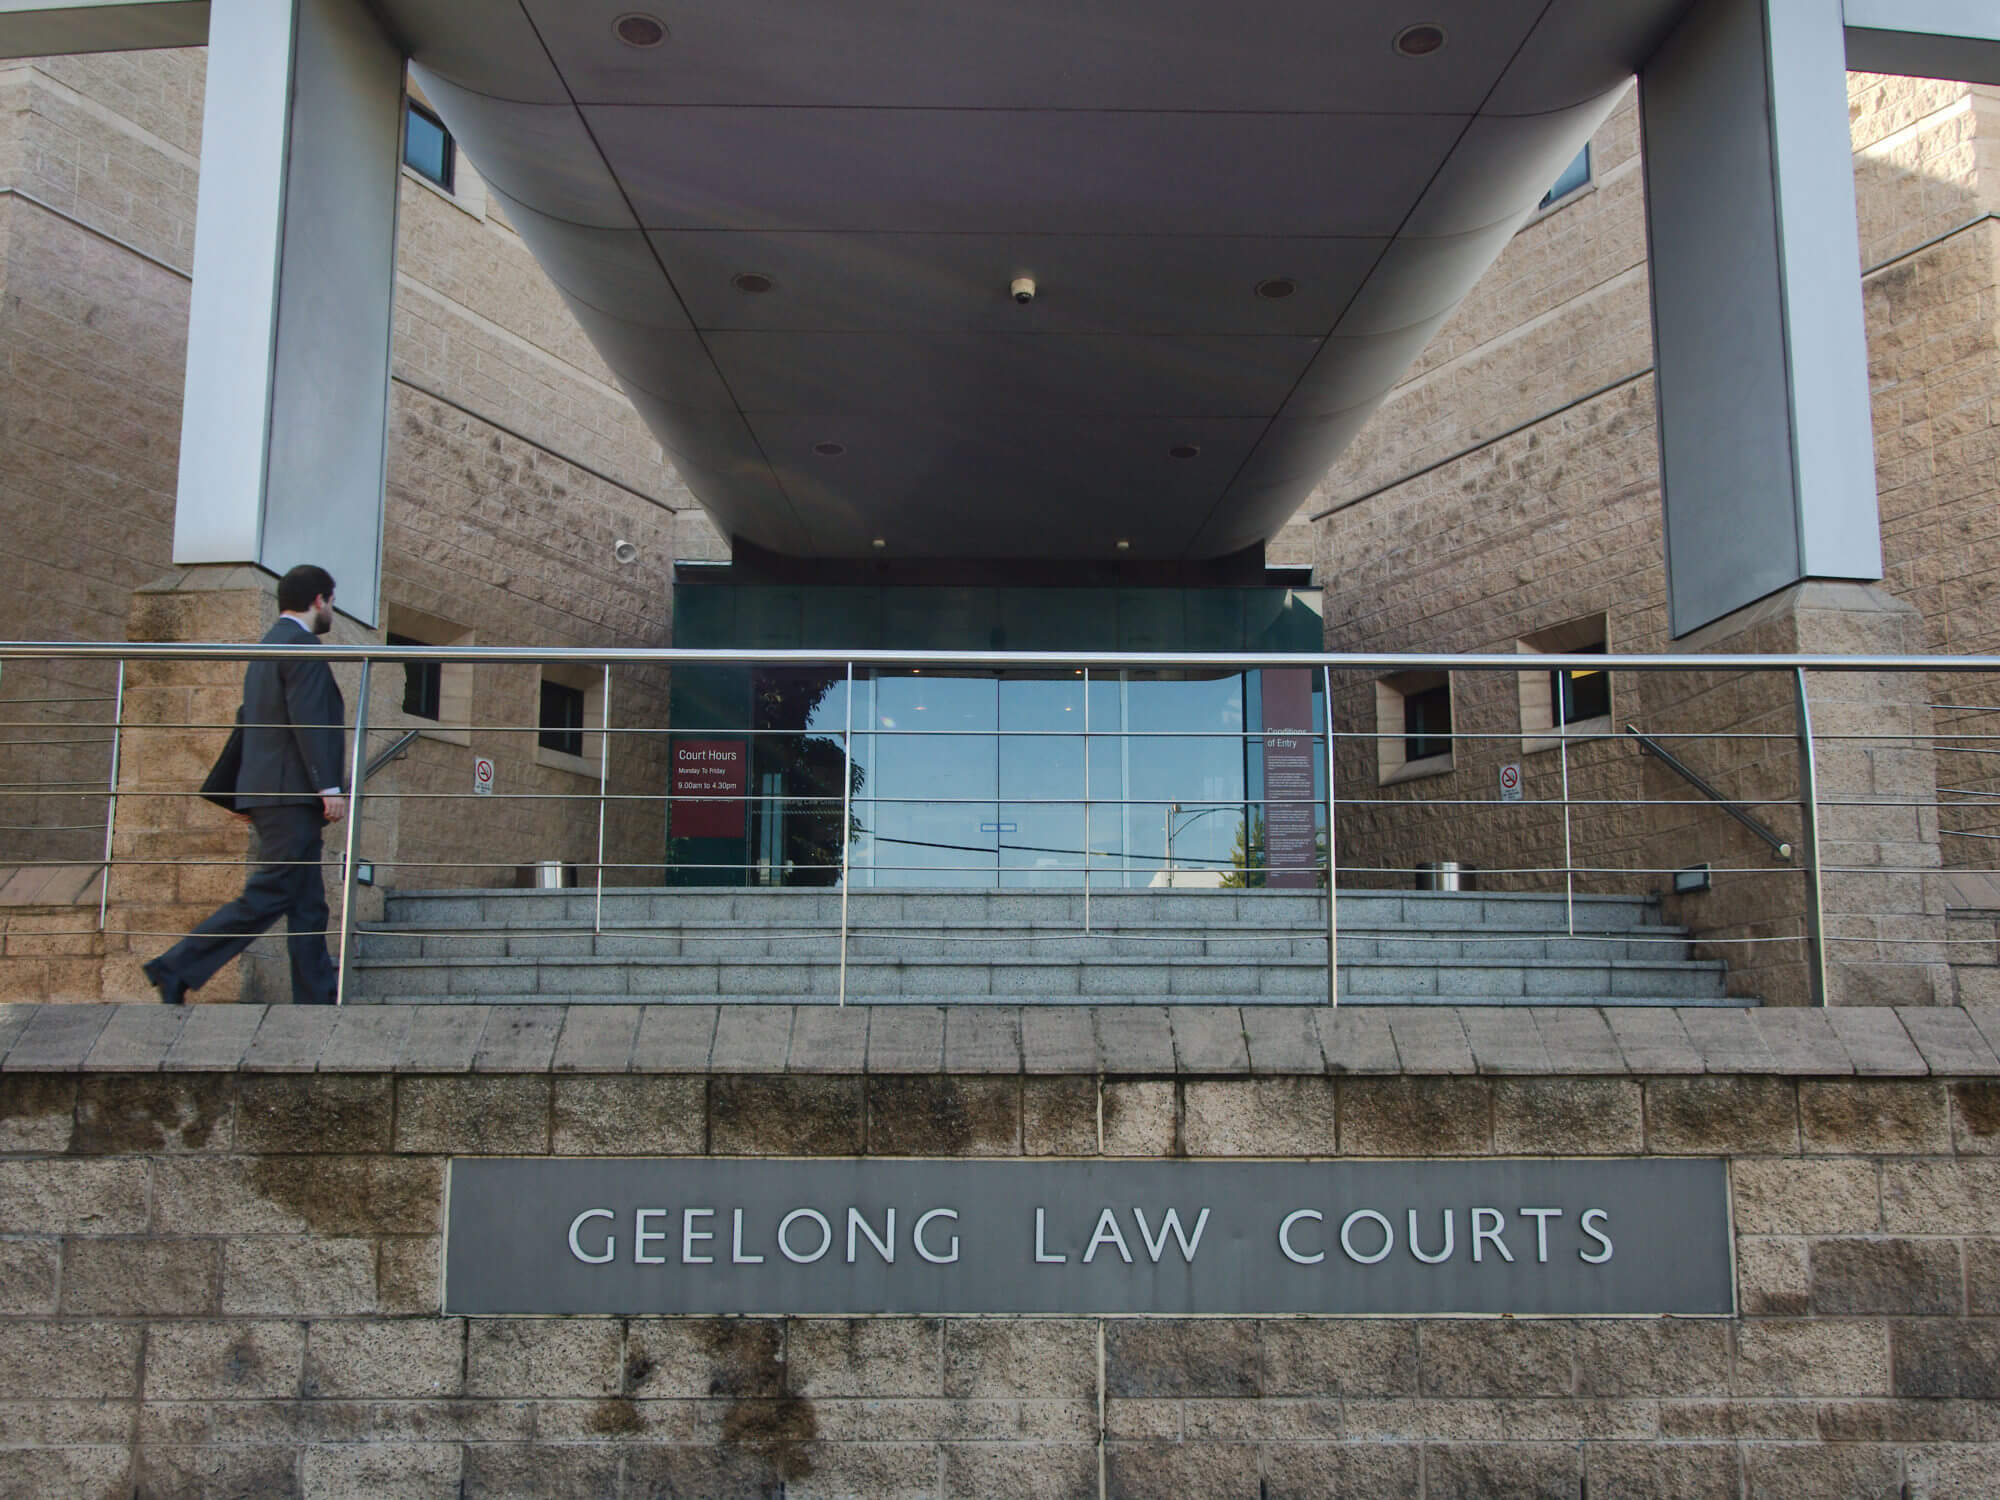 Court building exterior, awaiting personal safety intervention order hearing